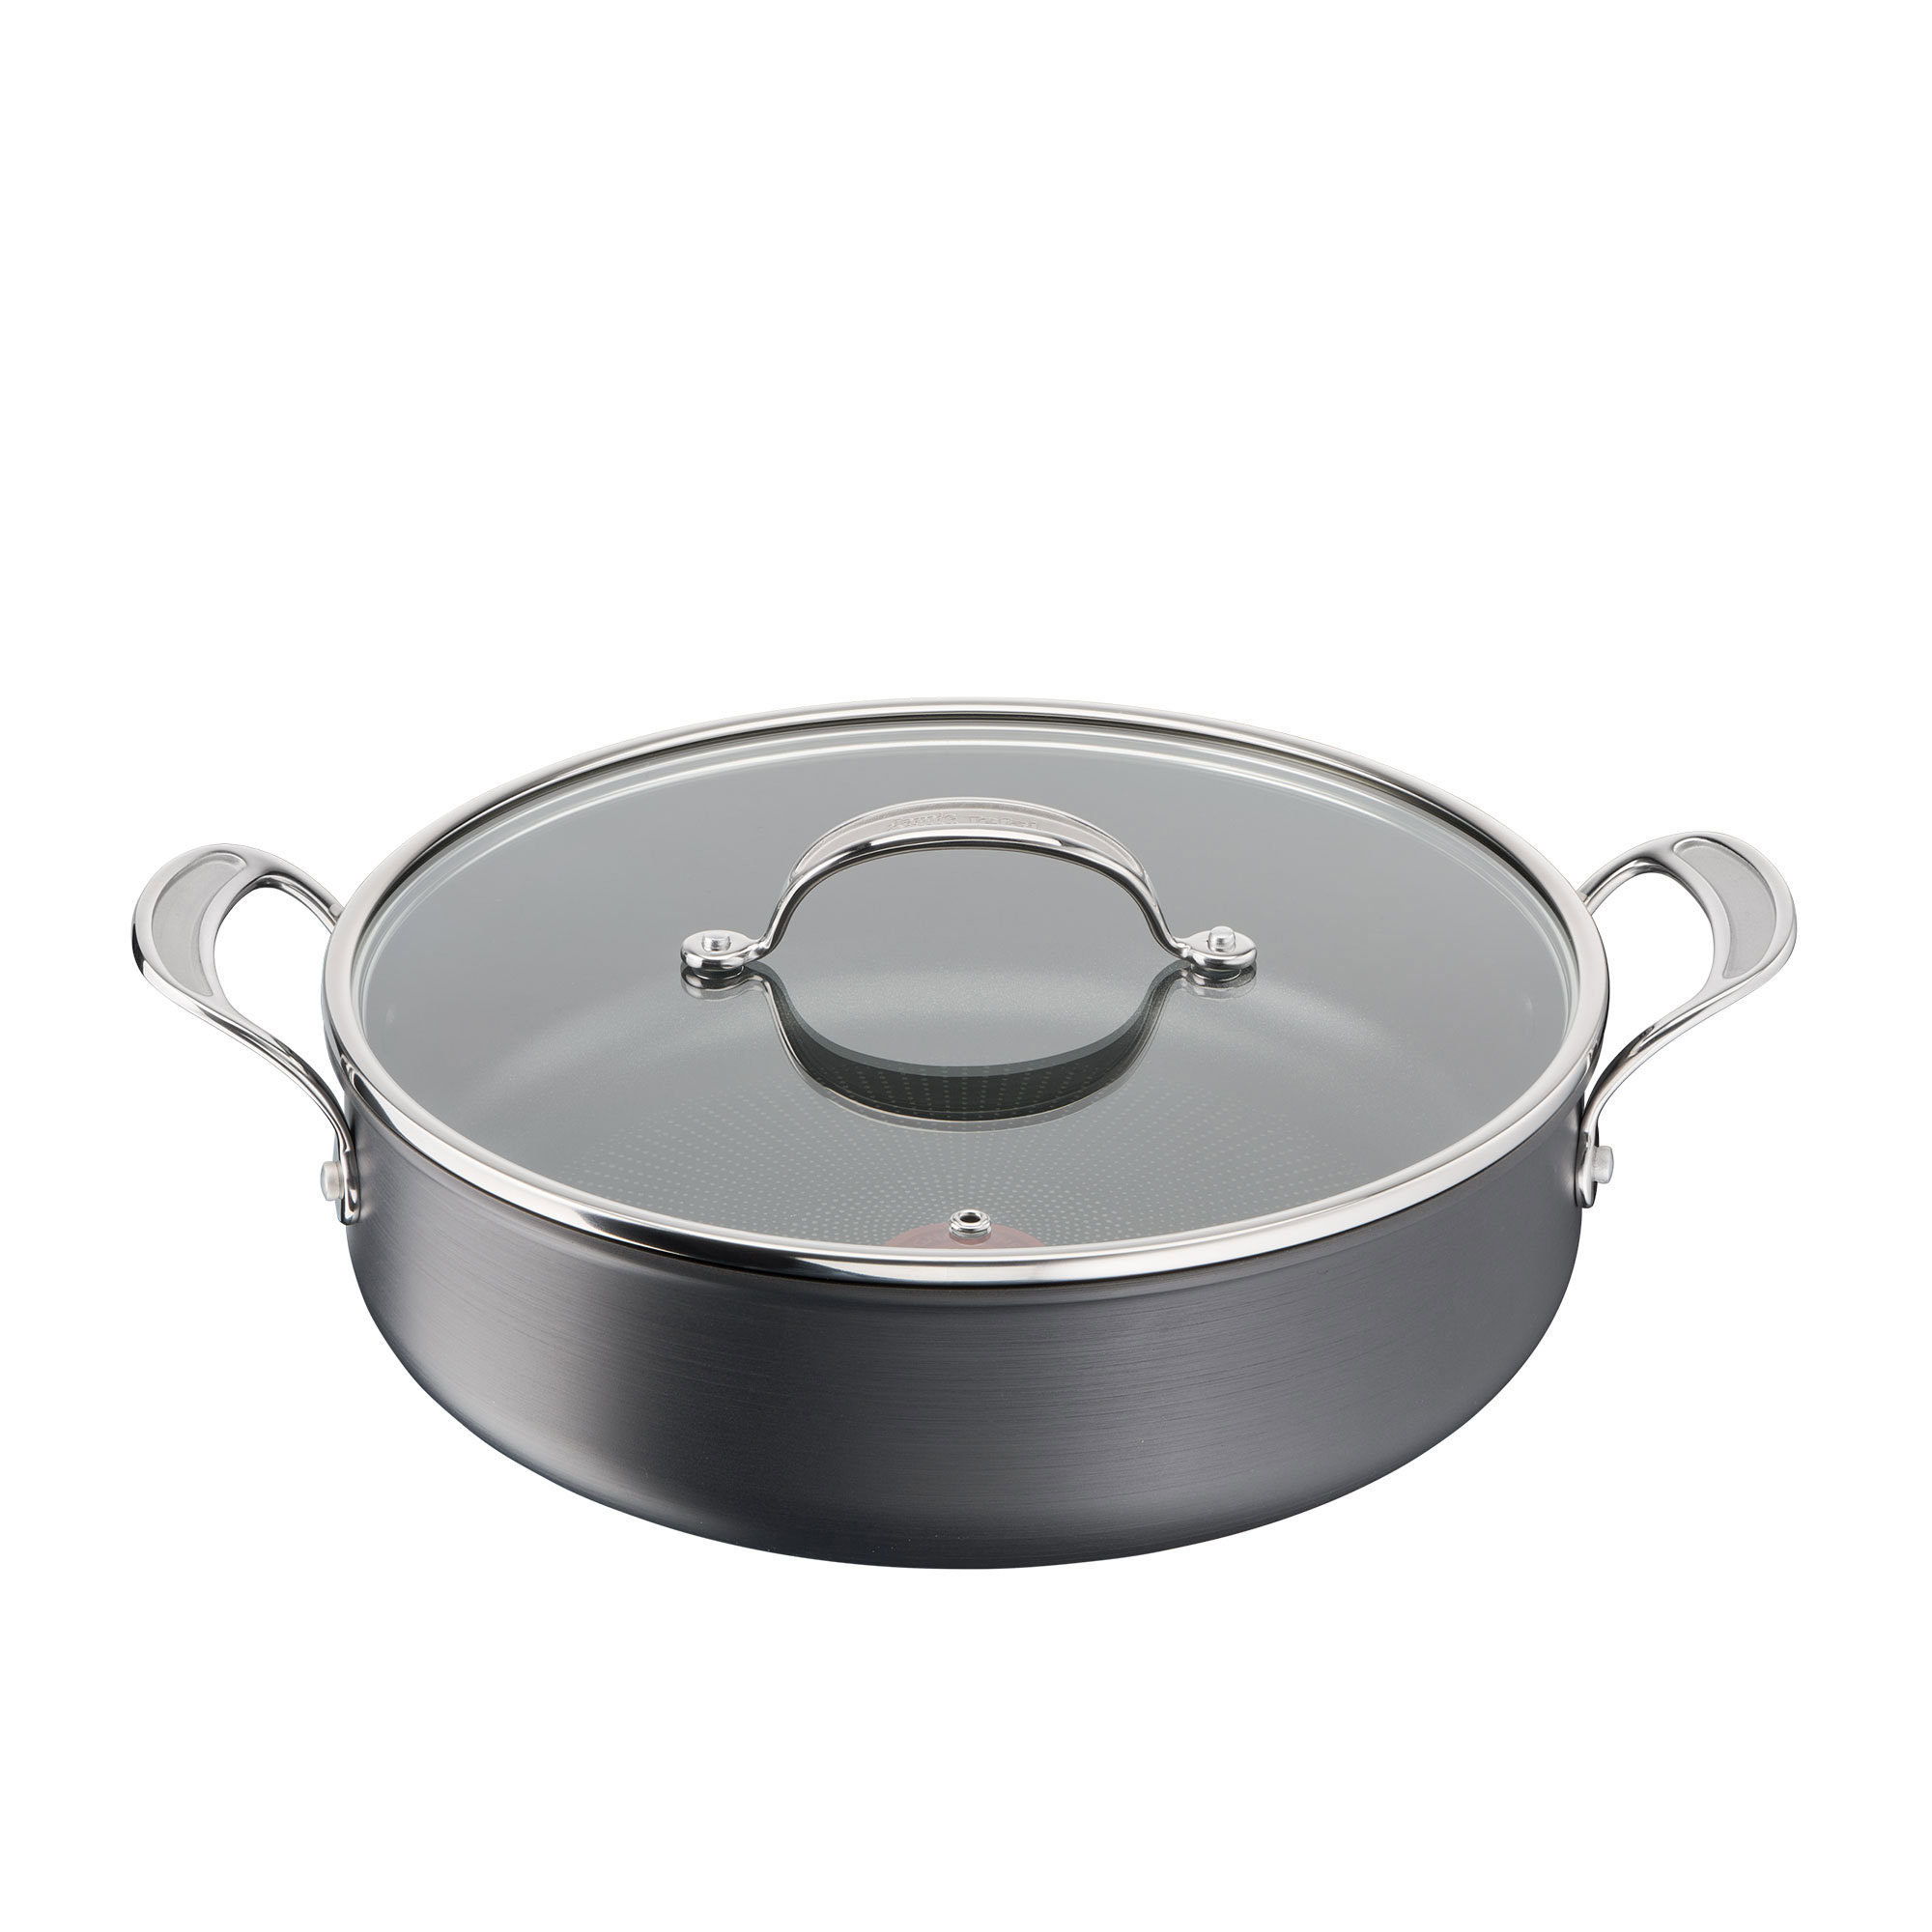 Jamie Oliver Cook's Classic Hard Anodised Induction Shallow Pan 30cm